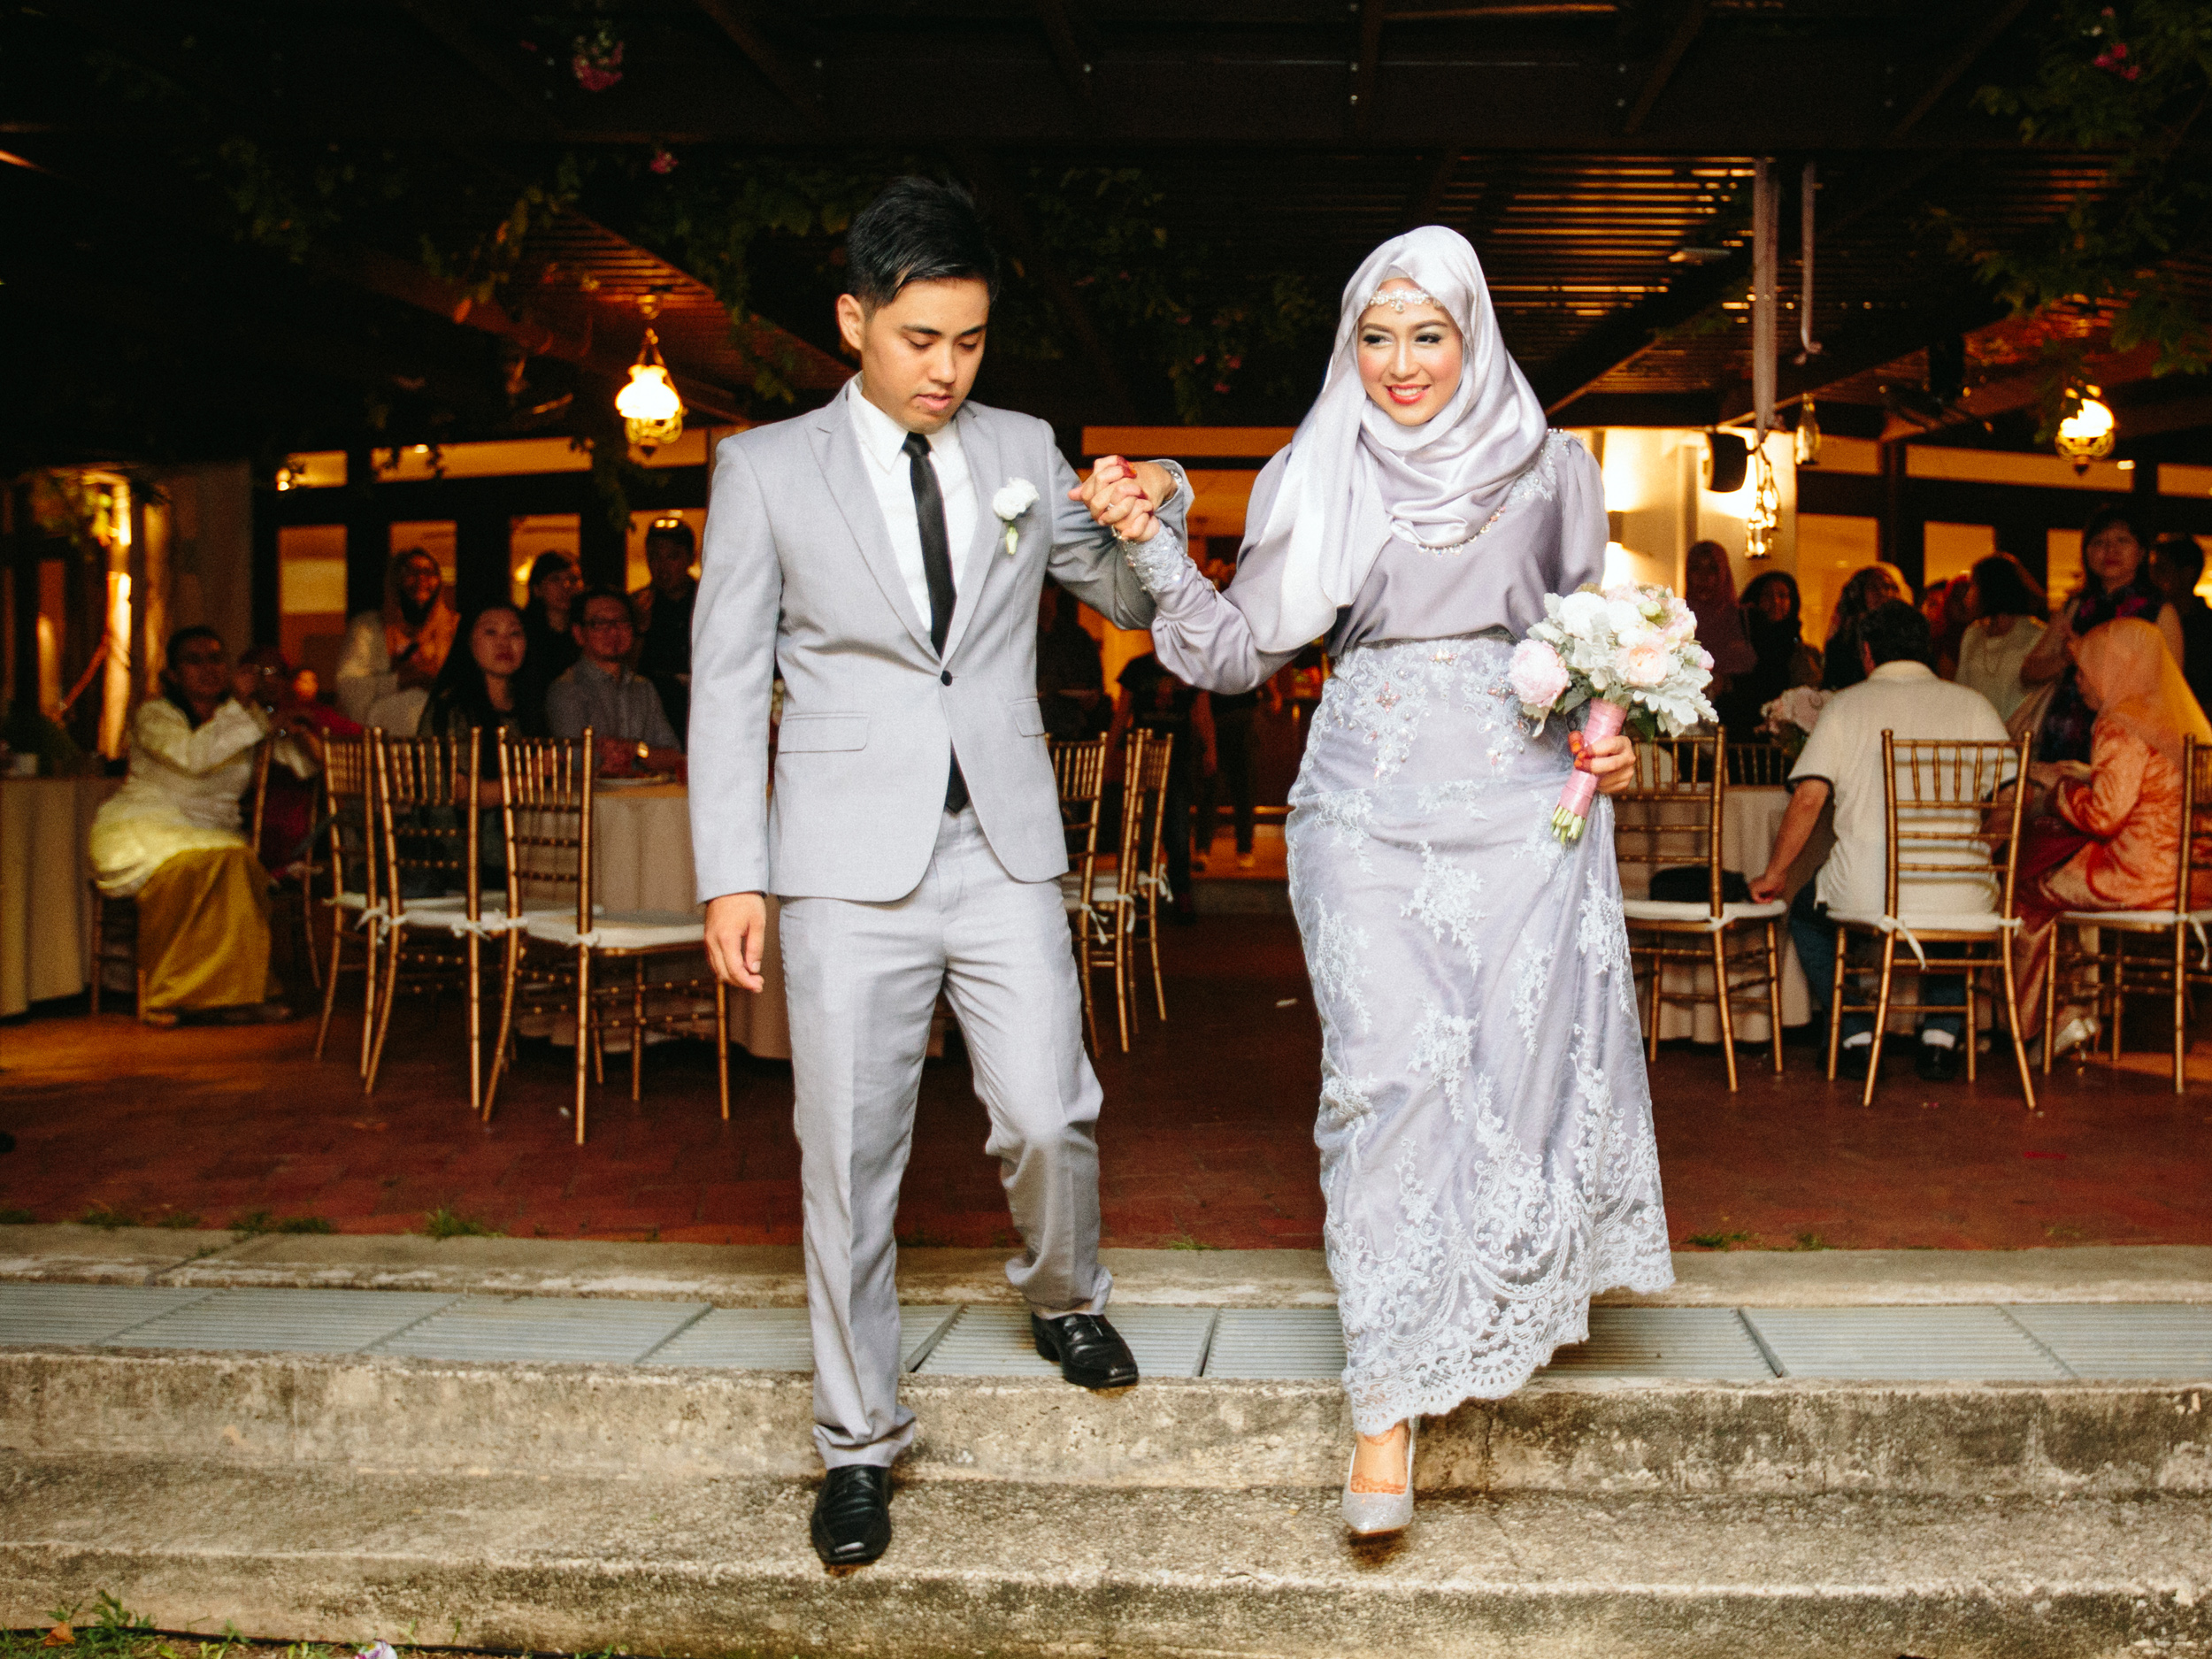 singapore-wedding-photographer-wemadethese-aisyah-helmi-70.jpg